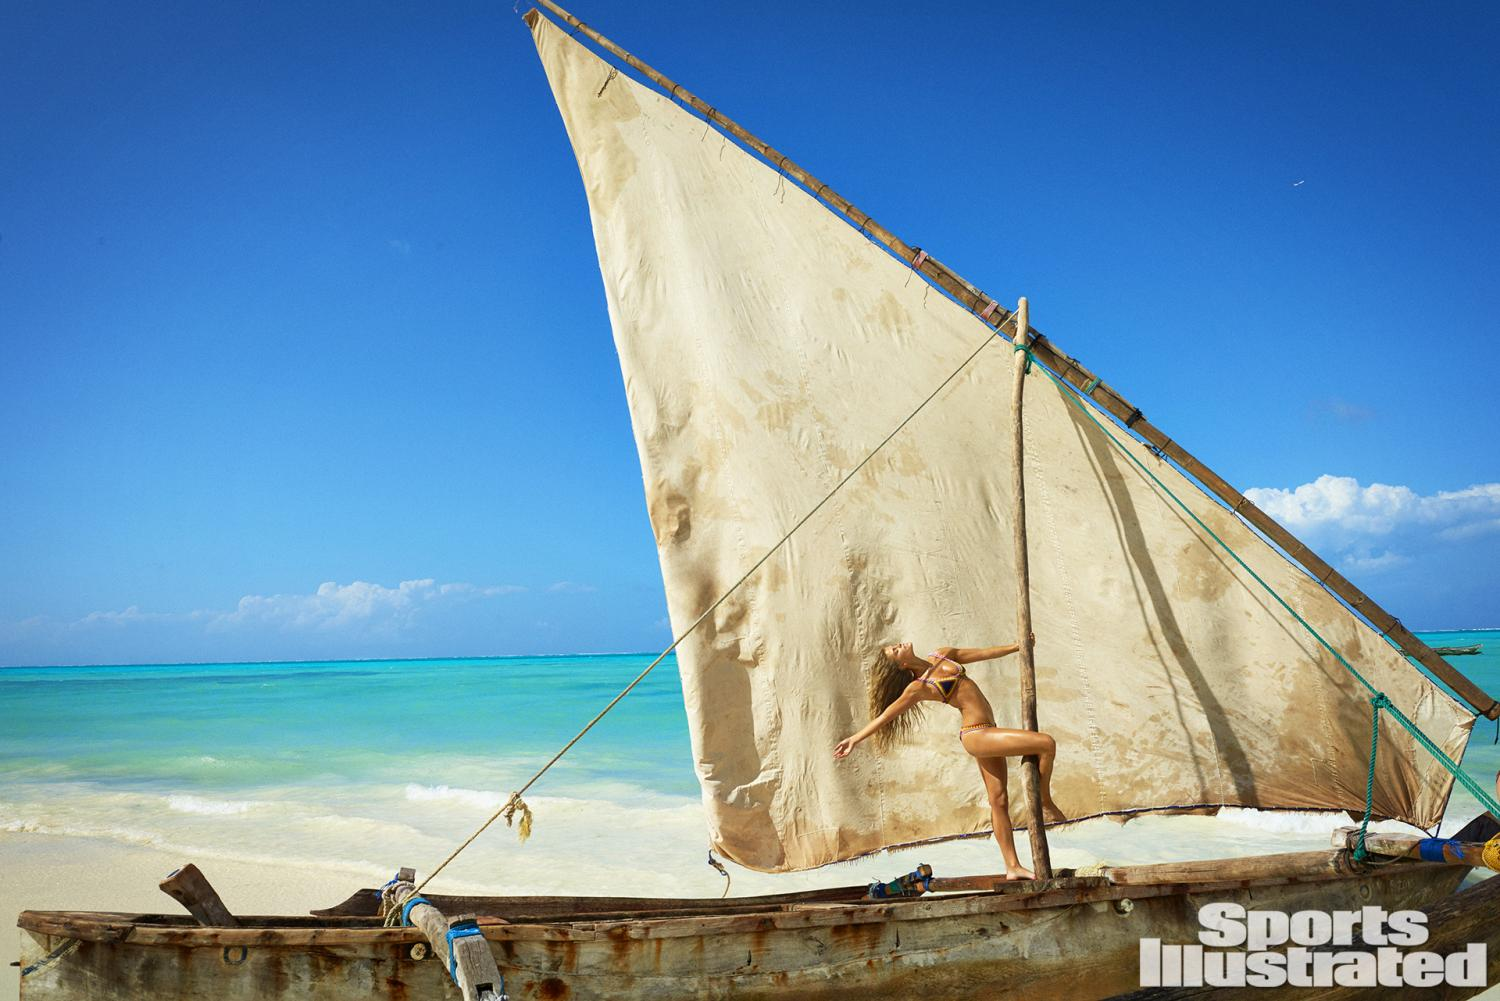 Nina Agdal was photographed by Ruven Afanador in Zanzibar. Swimsuit by KIINI.